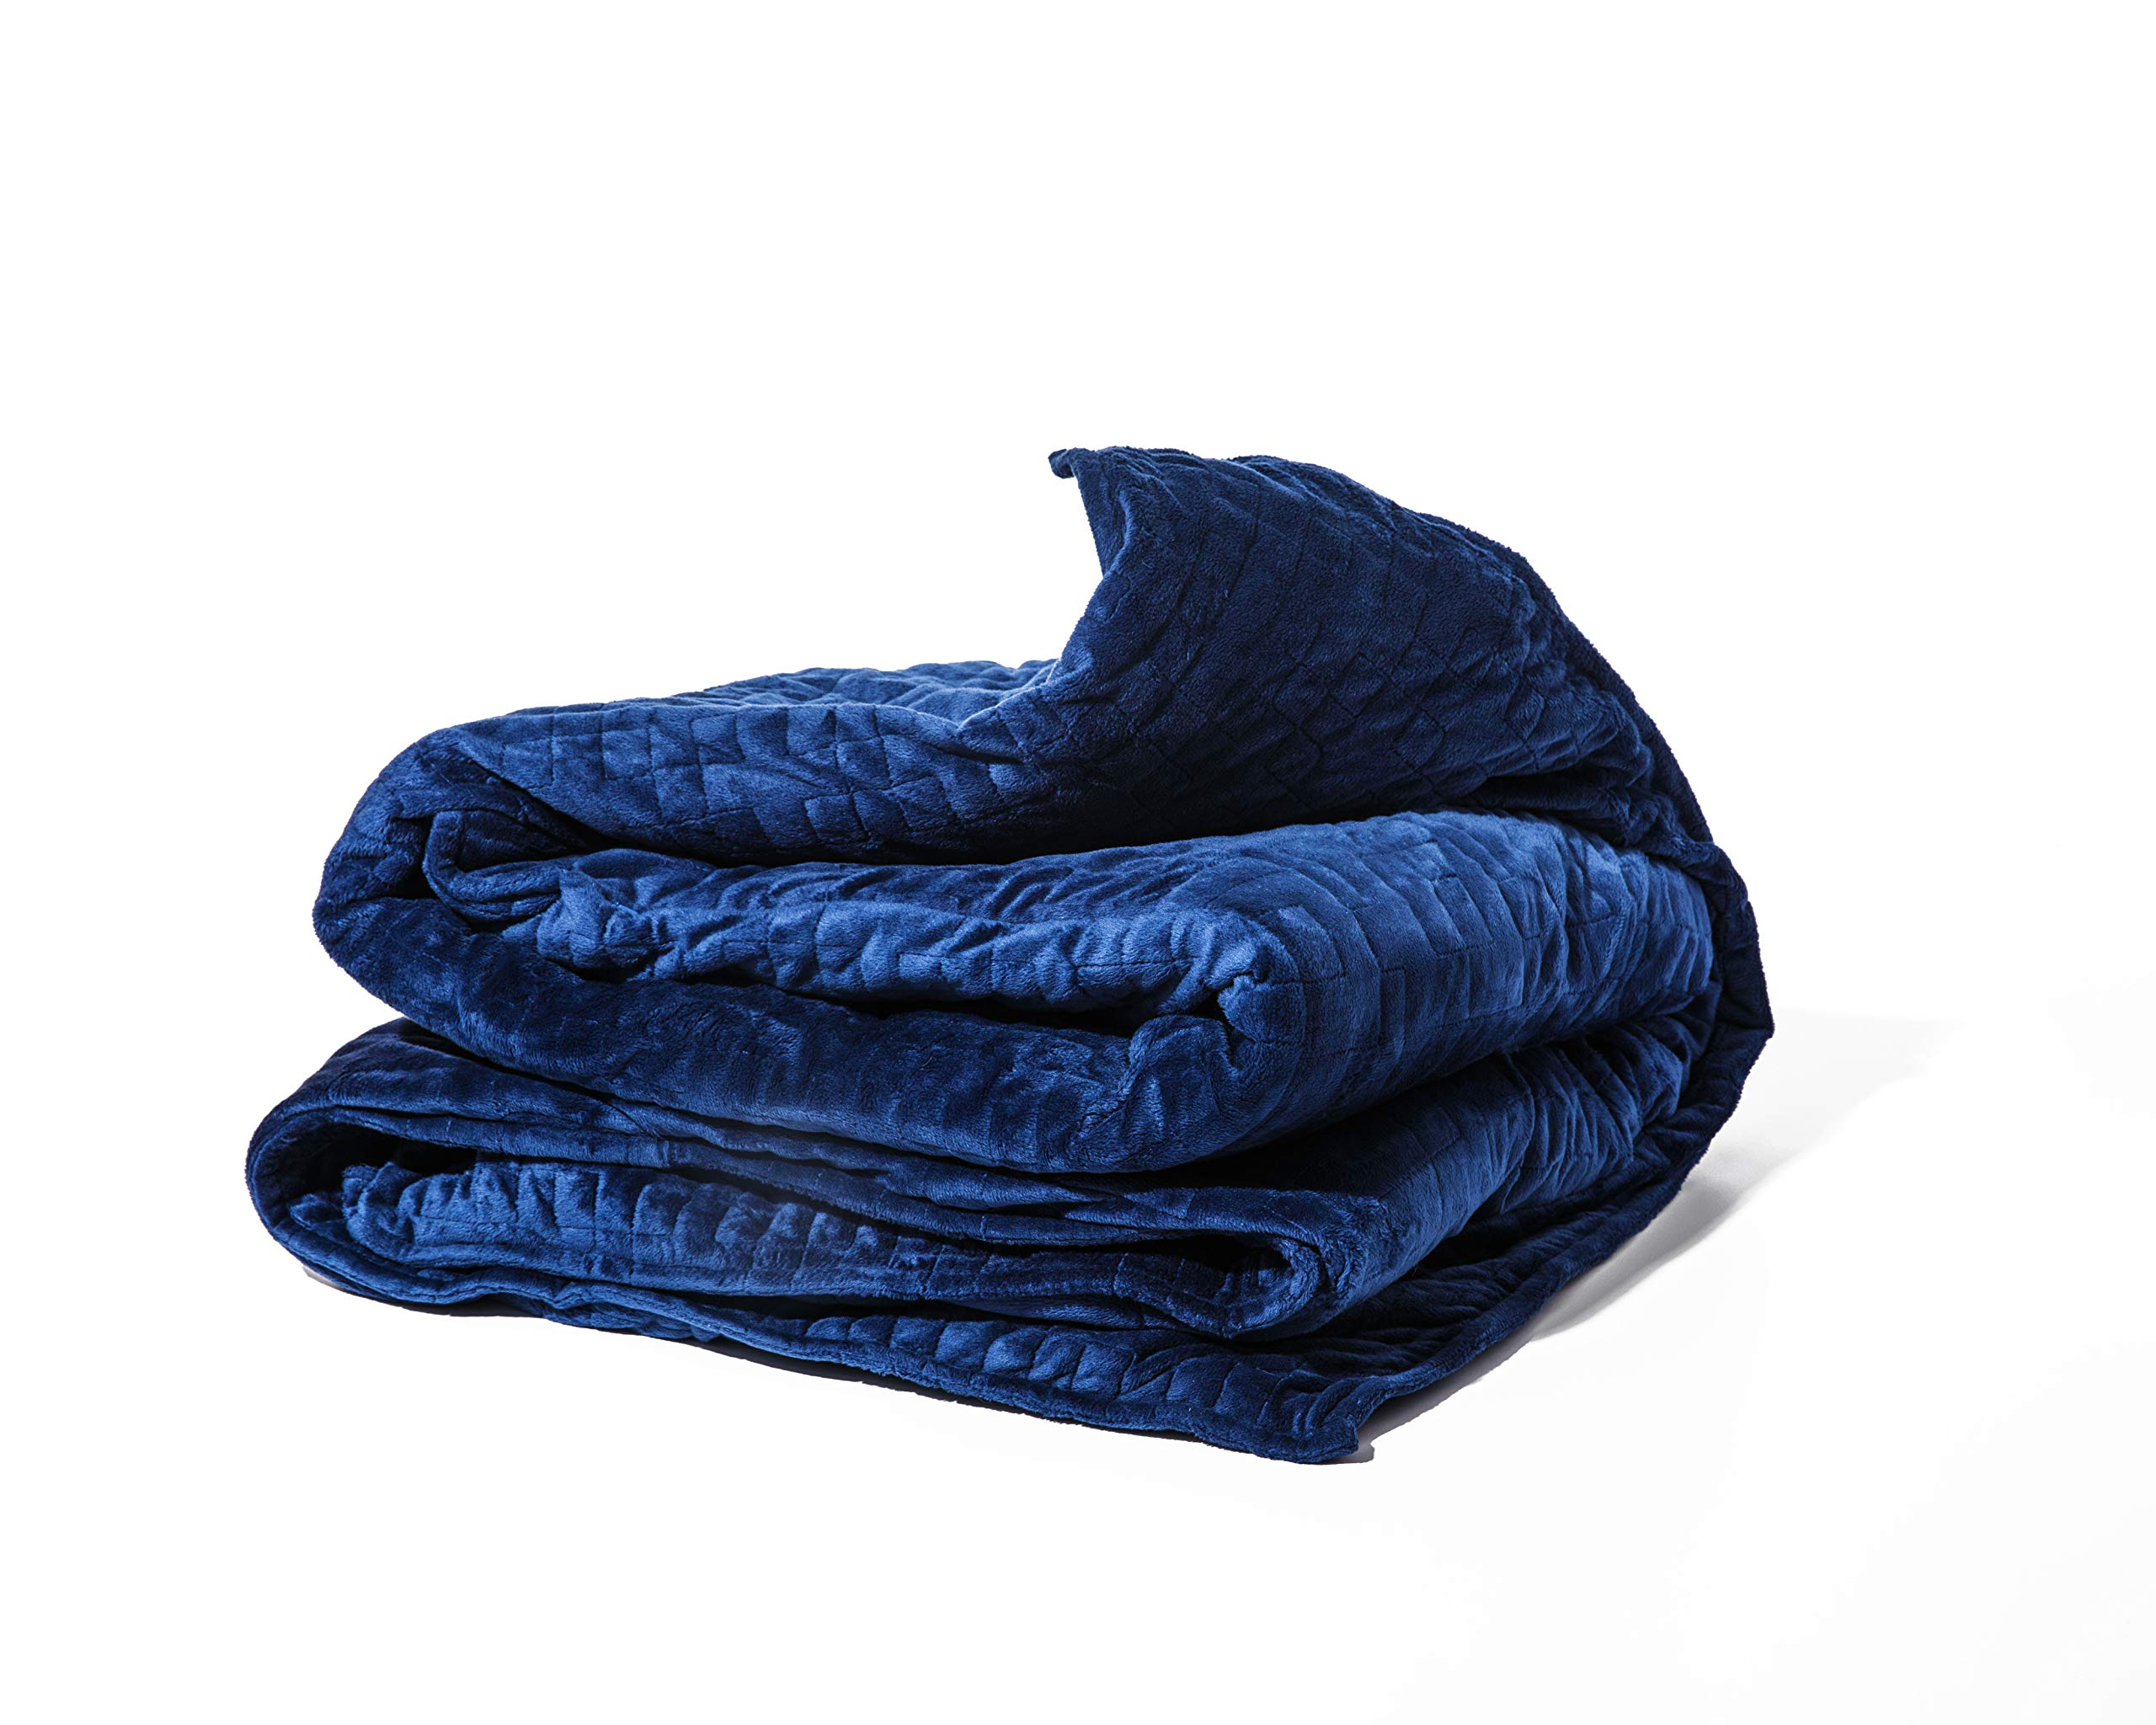 Gravity Blanket: The Weighted Blanket For Sleep, Stress and Anxiety, Navy 48'' x 72'' Size, 25-Pound